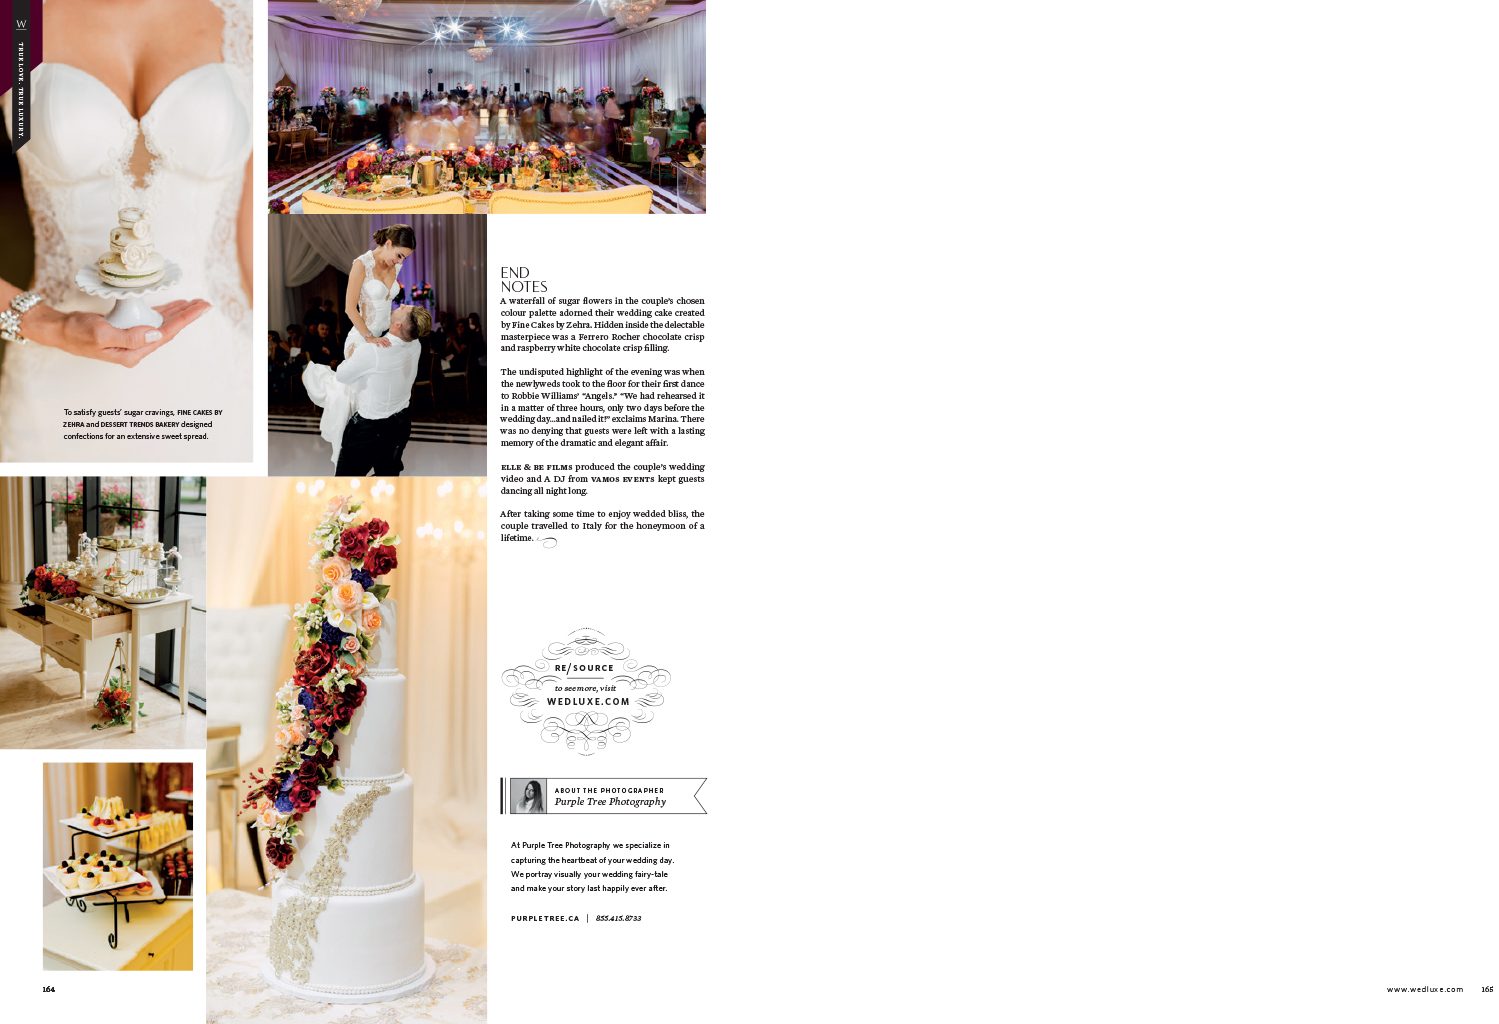 WS17_TOR_Download_RealWed_07-4